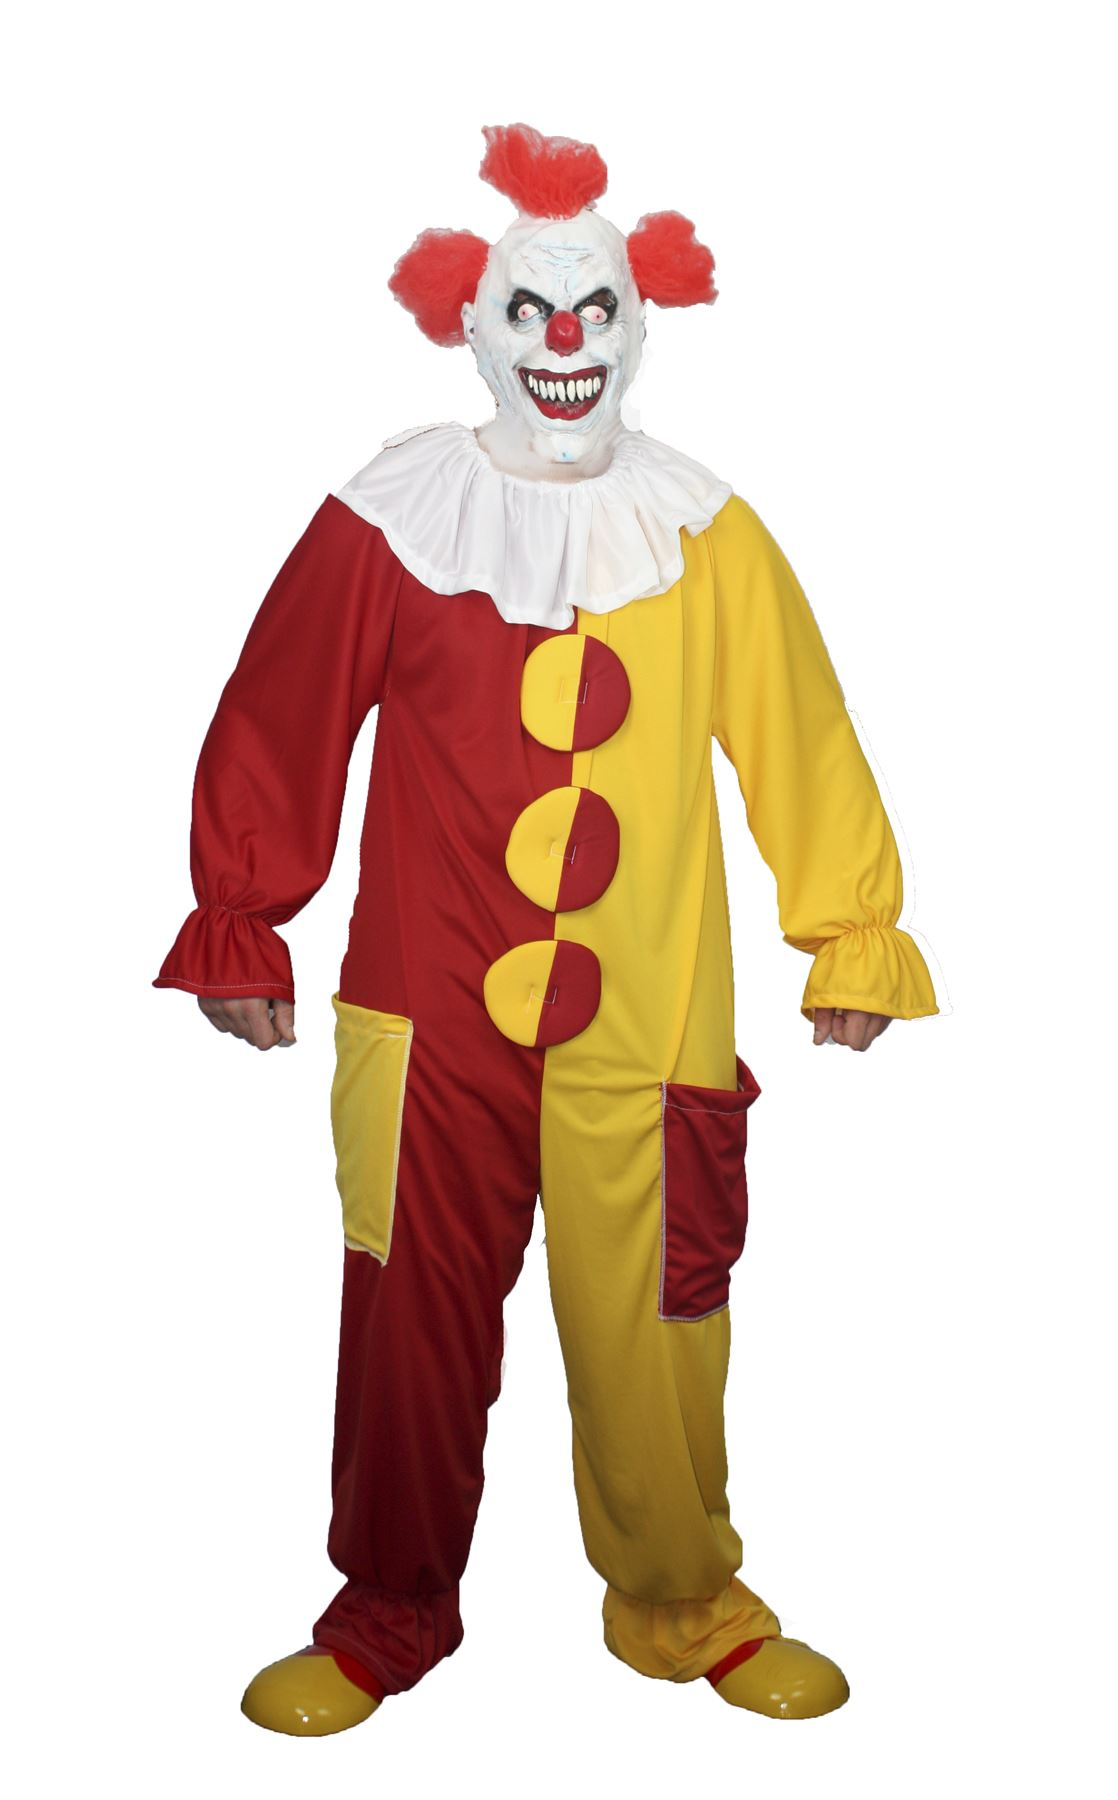 Red & Yellow Clown Costume Halloween Fancy Dress No Mask inc | eBay